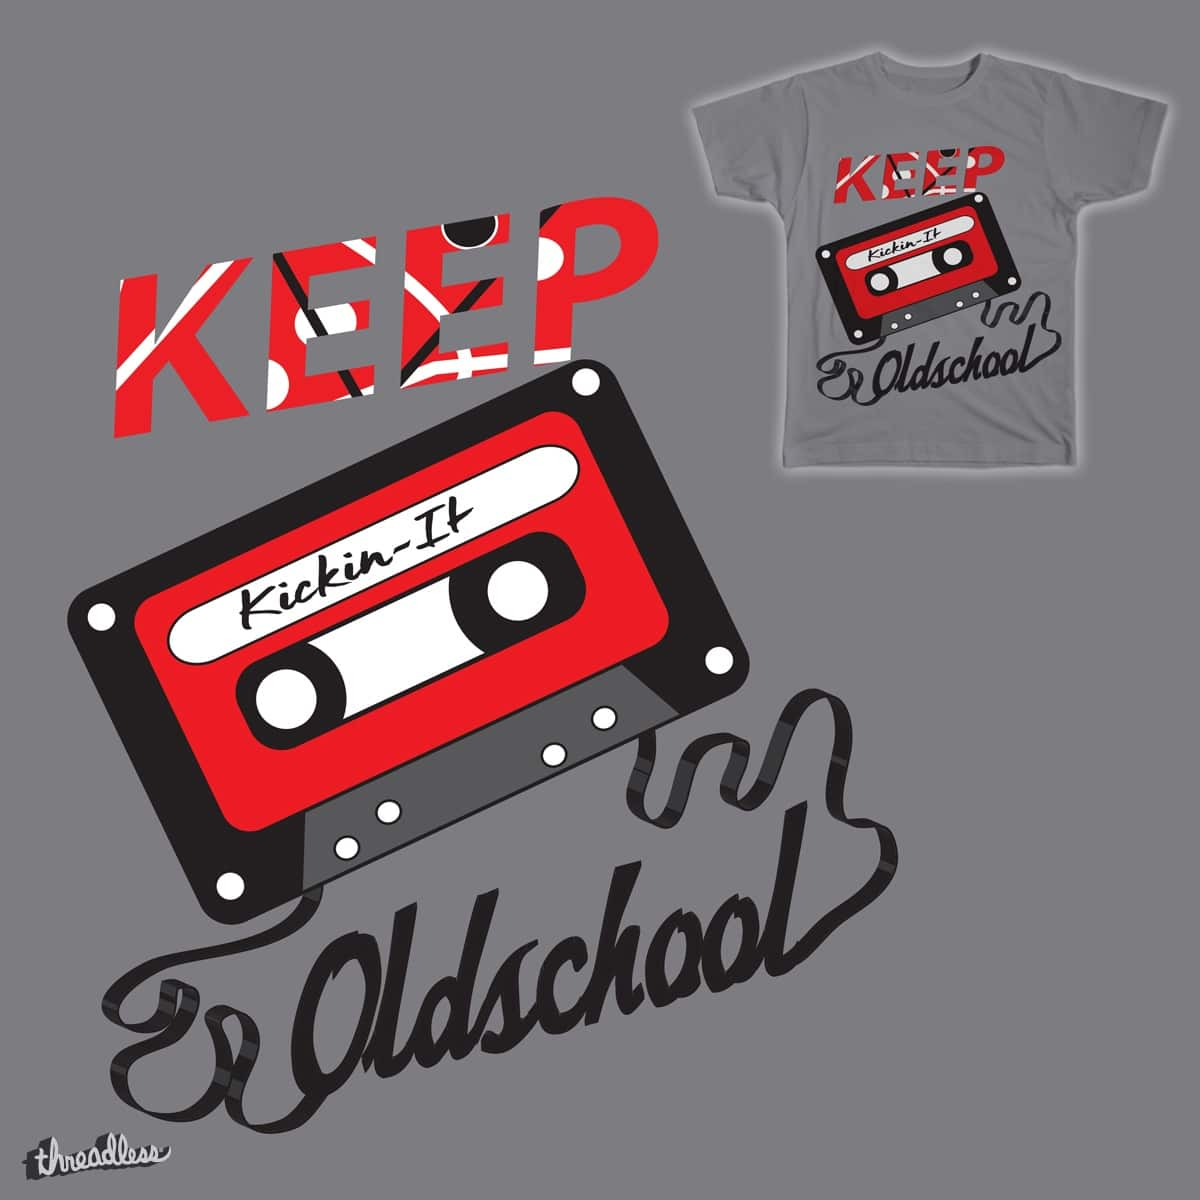 Keep Kickin-It Oldschool by clickcm1 on Threadless